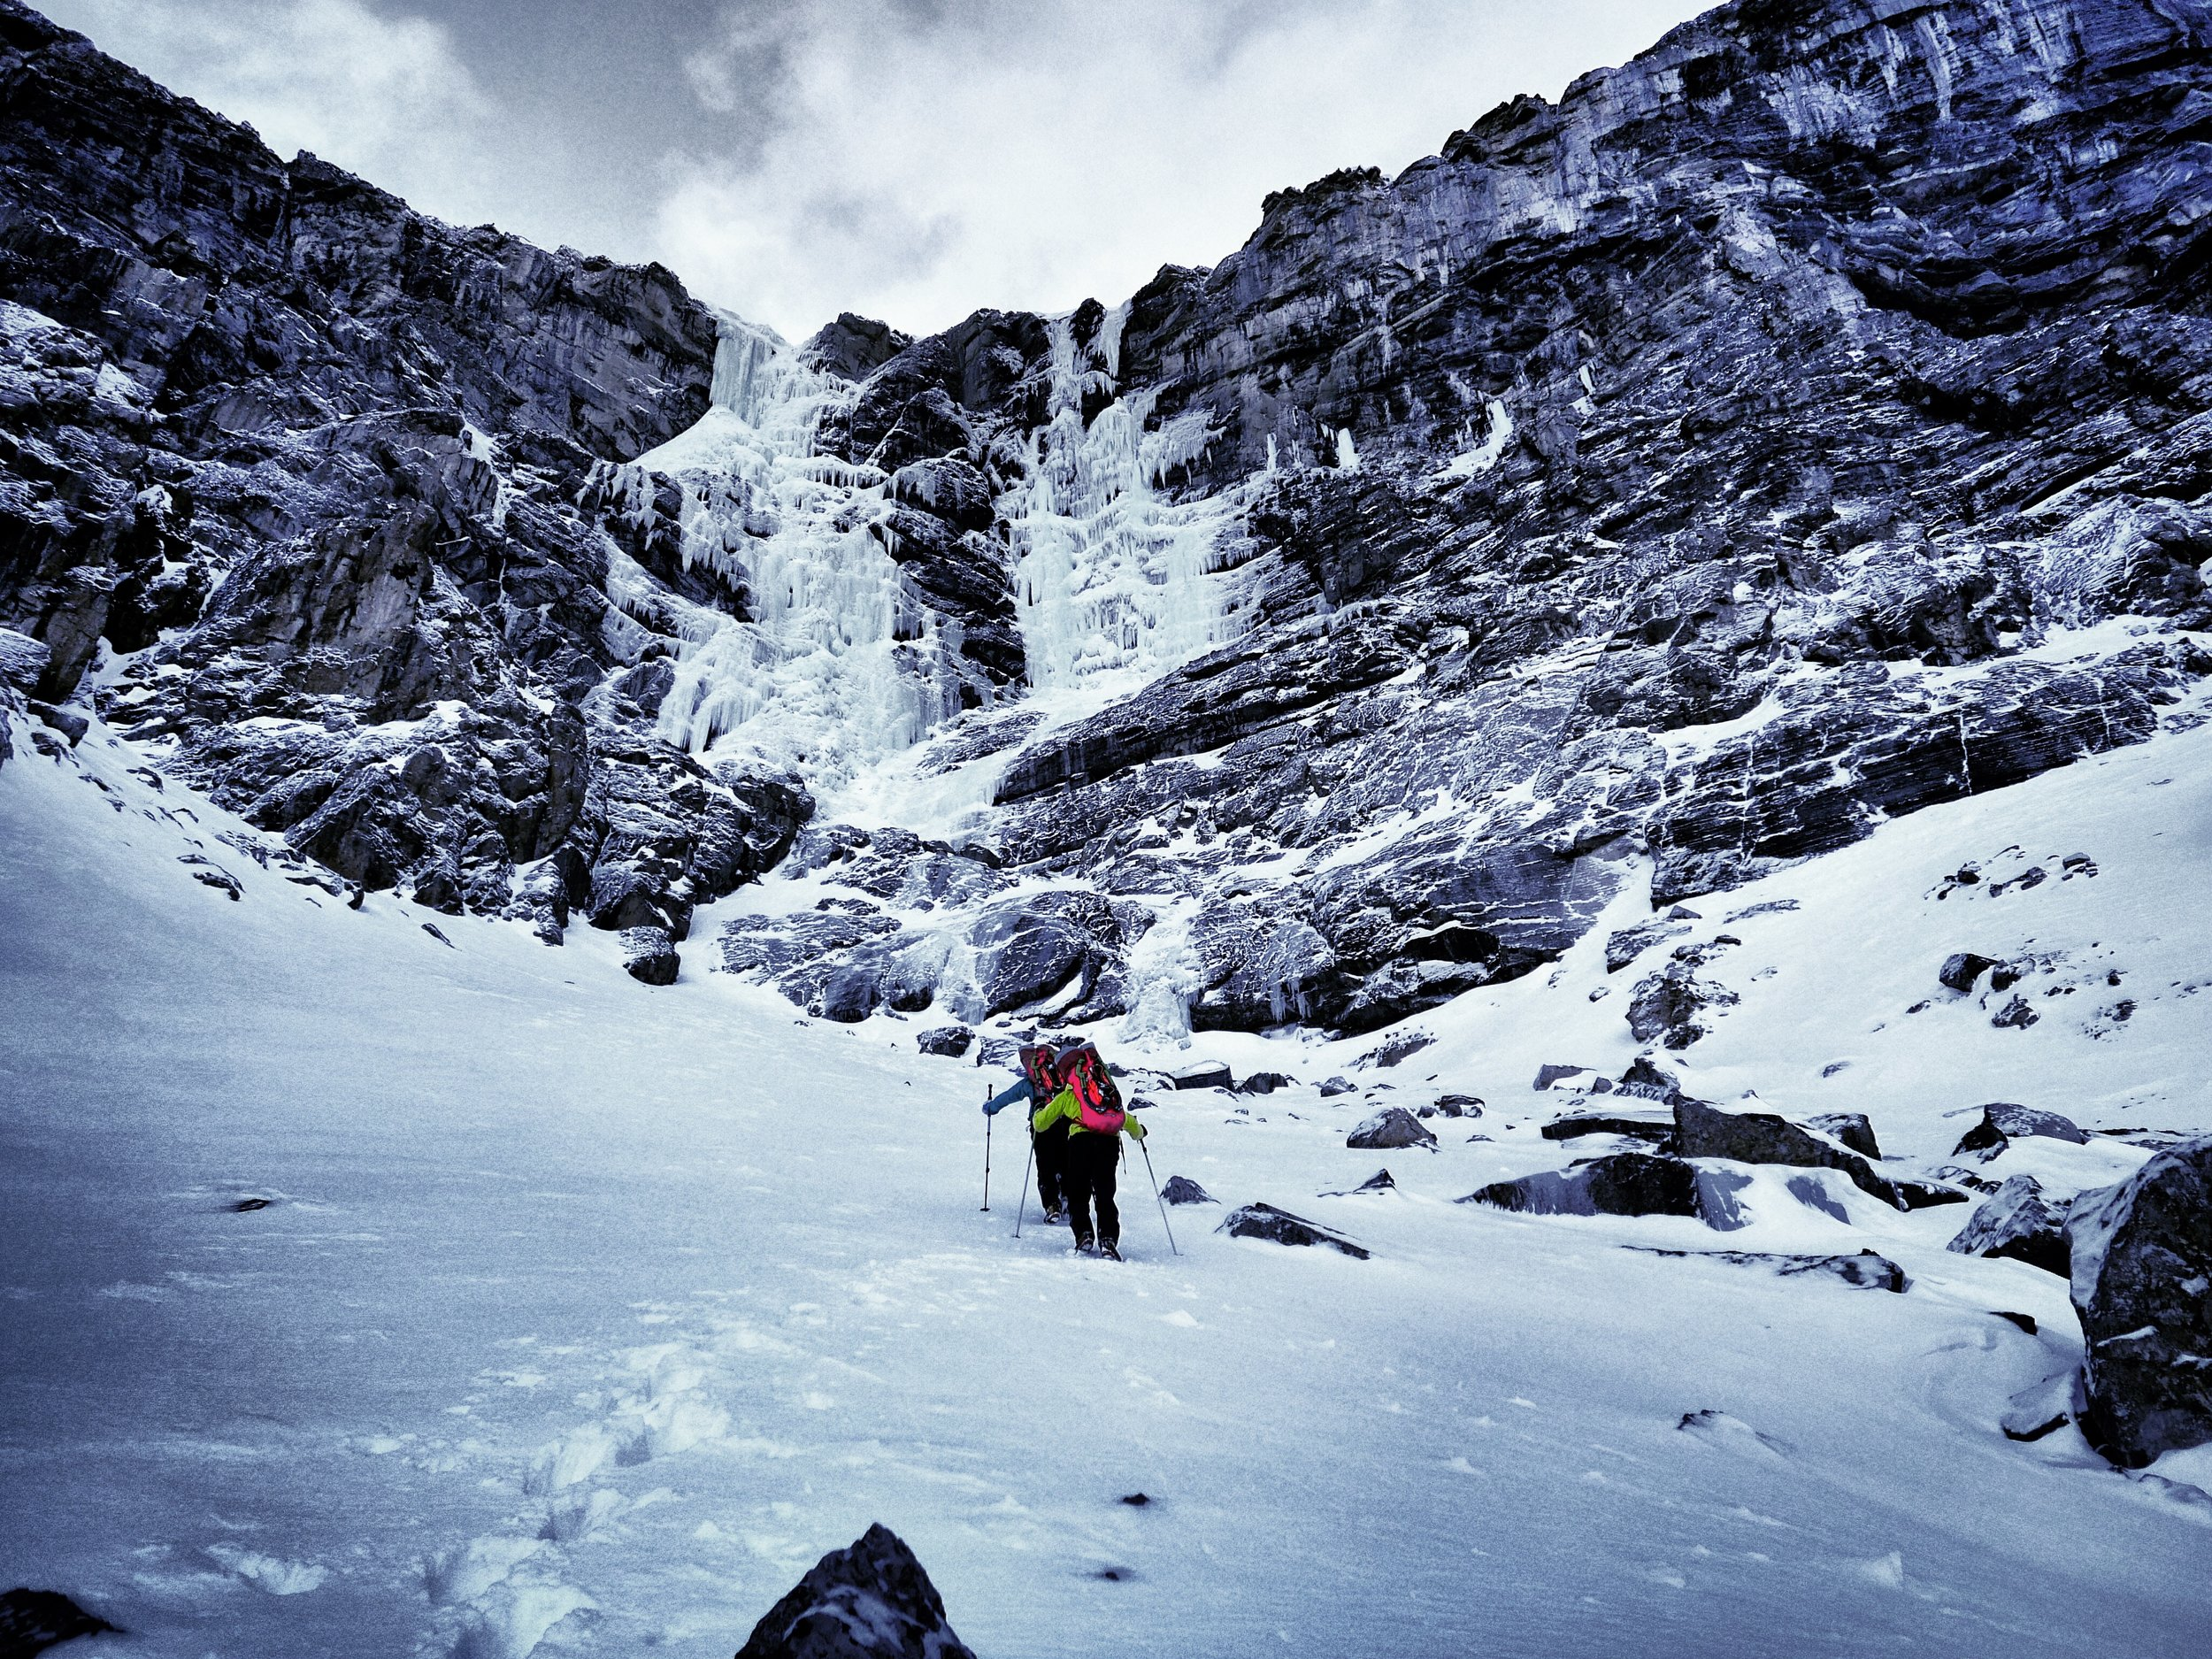 Tanja and Heike Schmitt approaching Virtual Reality December 2015, Icefieldsparkway, Canada picture Matthias Scherer